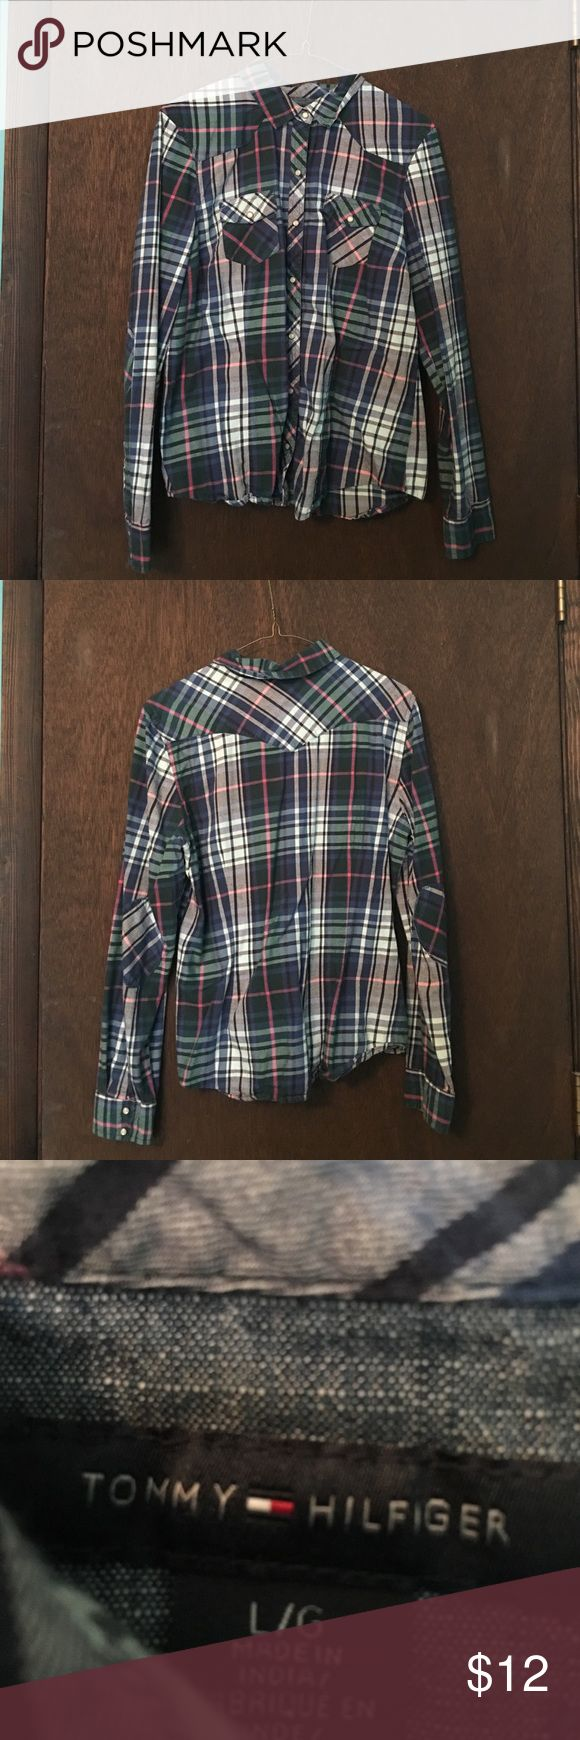 Tommy Hilfiger Plaid Button Down Shirt Tommy Hilfiger plaid button down shirt. Like New. Offers welcome. Same or next day shipping. Tommy Hilfiger Tops Button Down Shirts